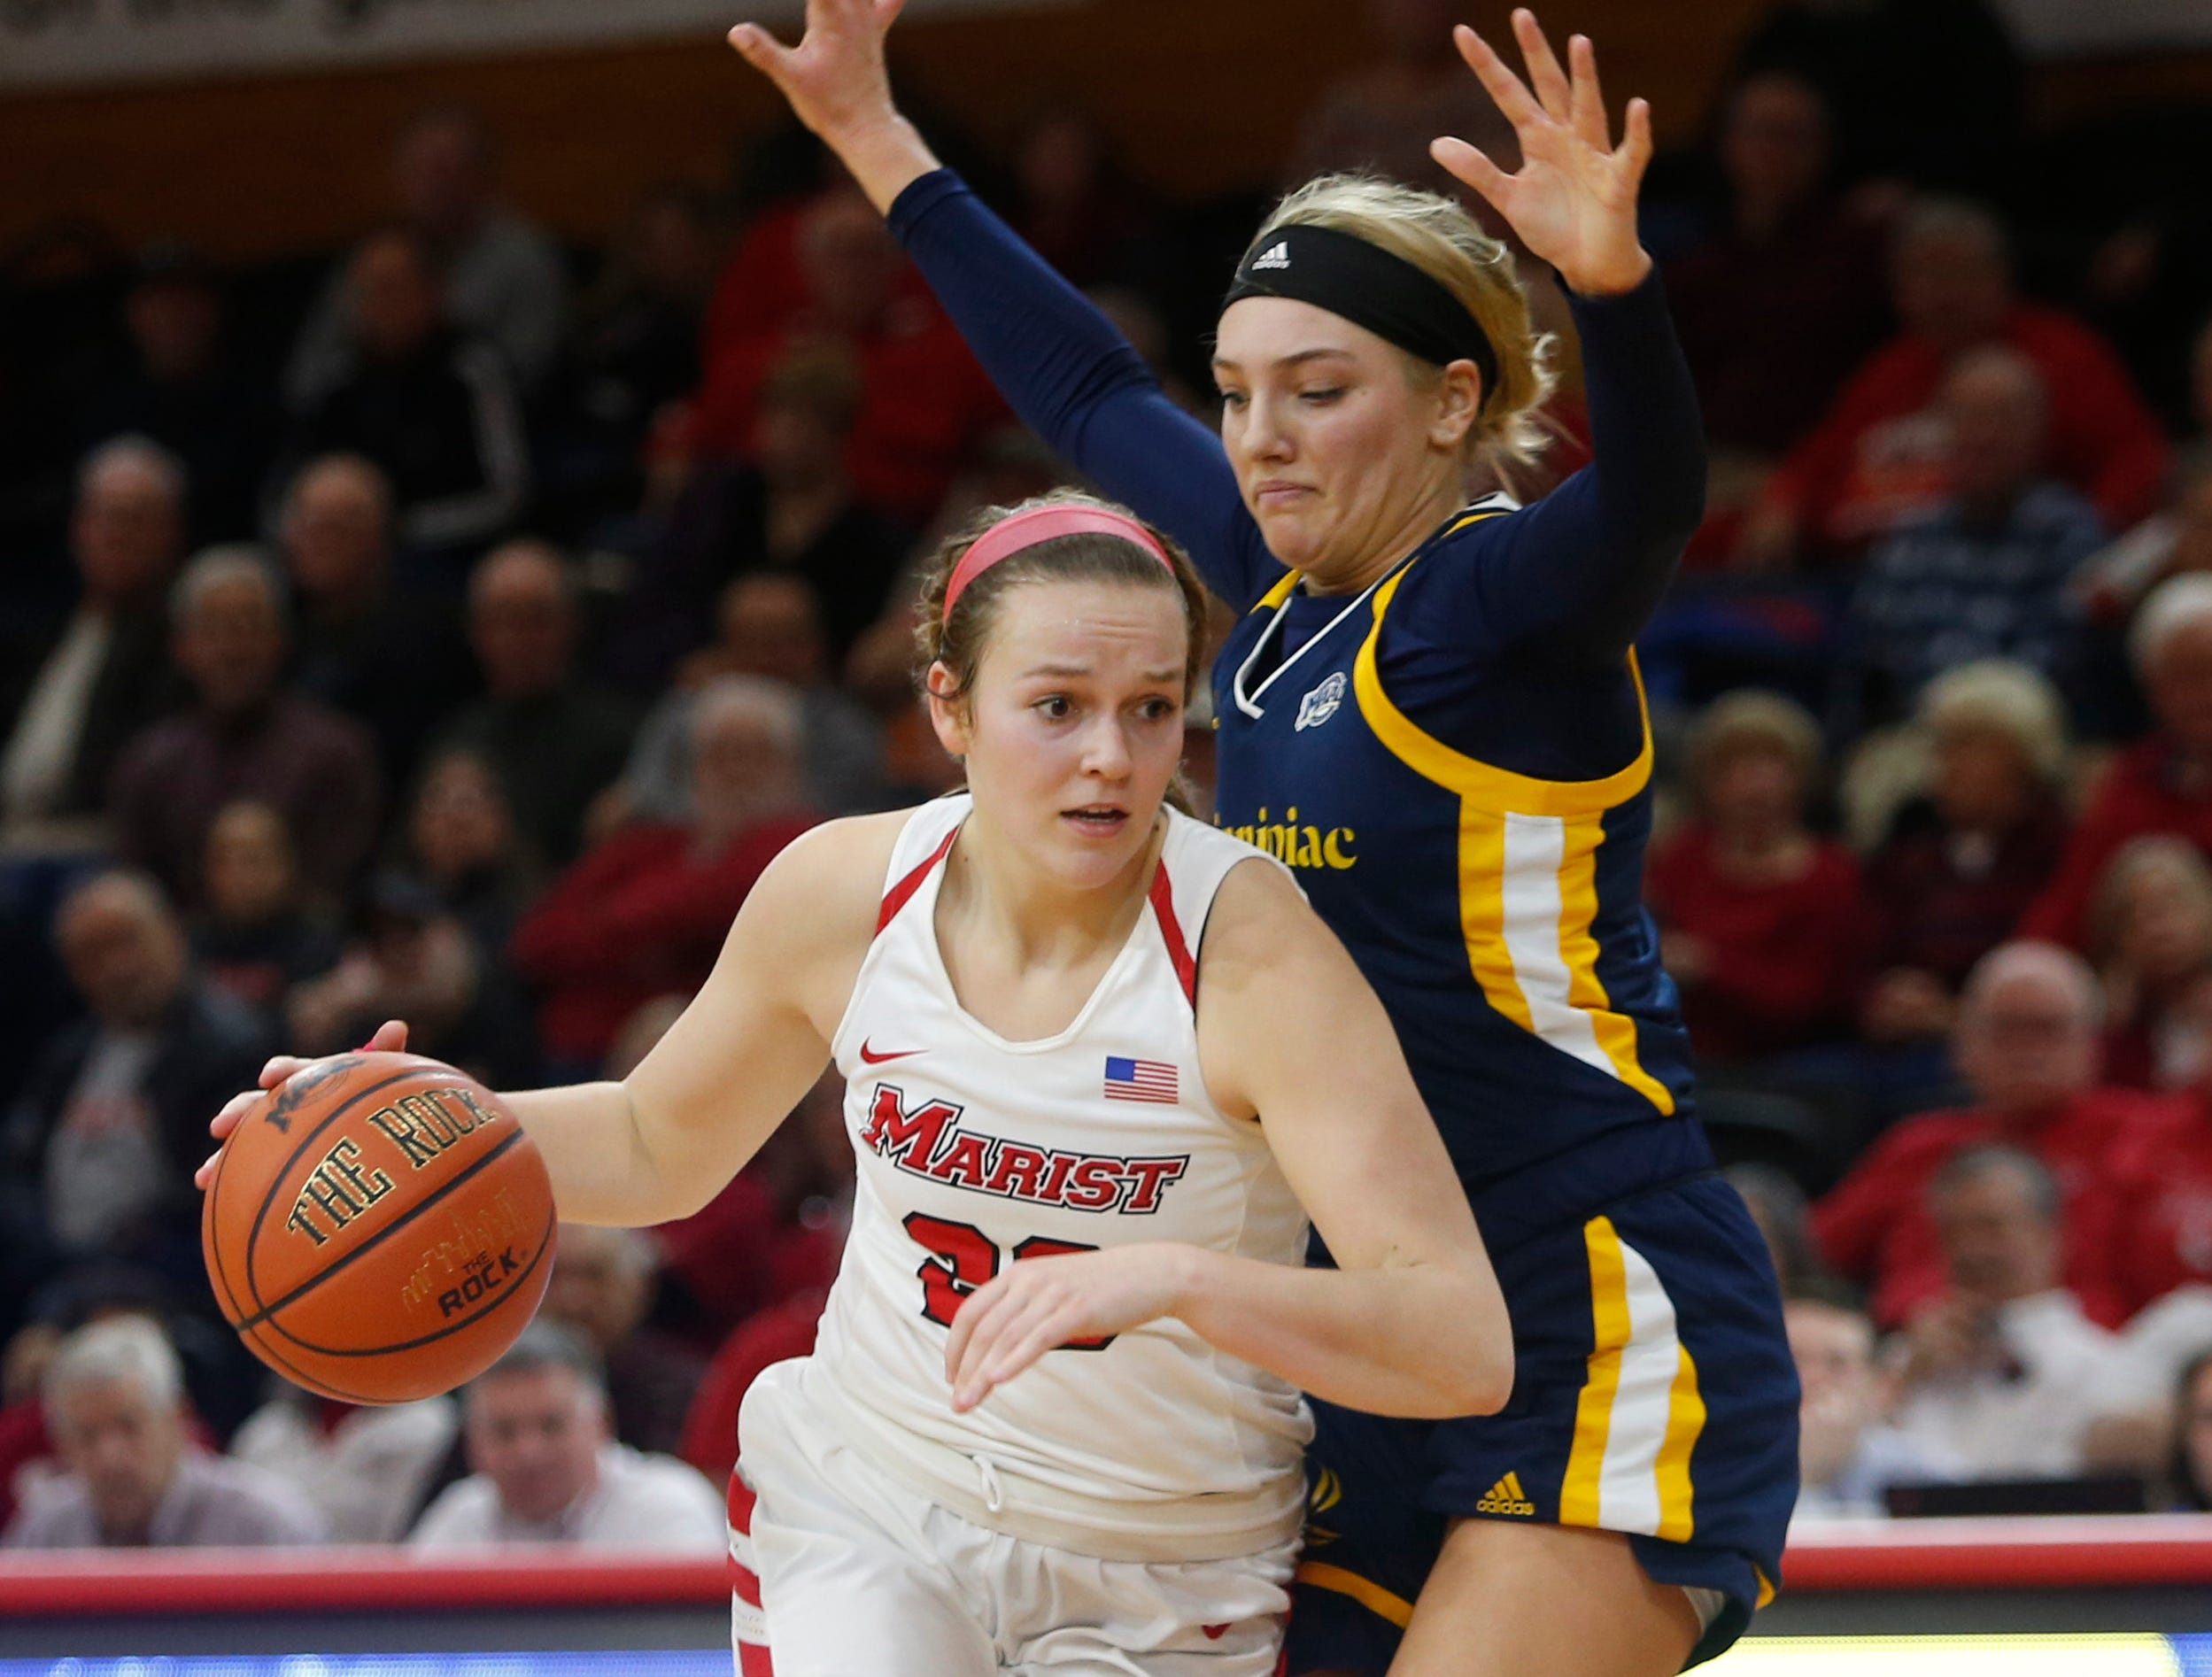 Marist's Rebekah Hand drives up court against Quinnipiac's Taylor Herd in Thursday's game.